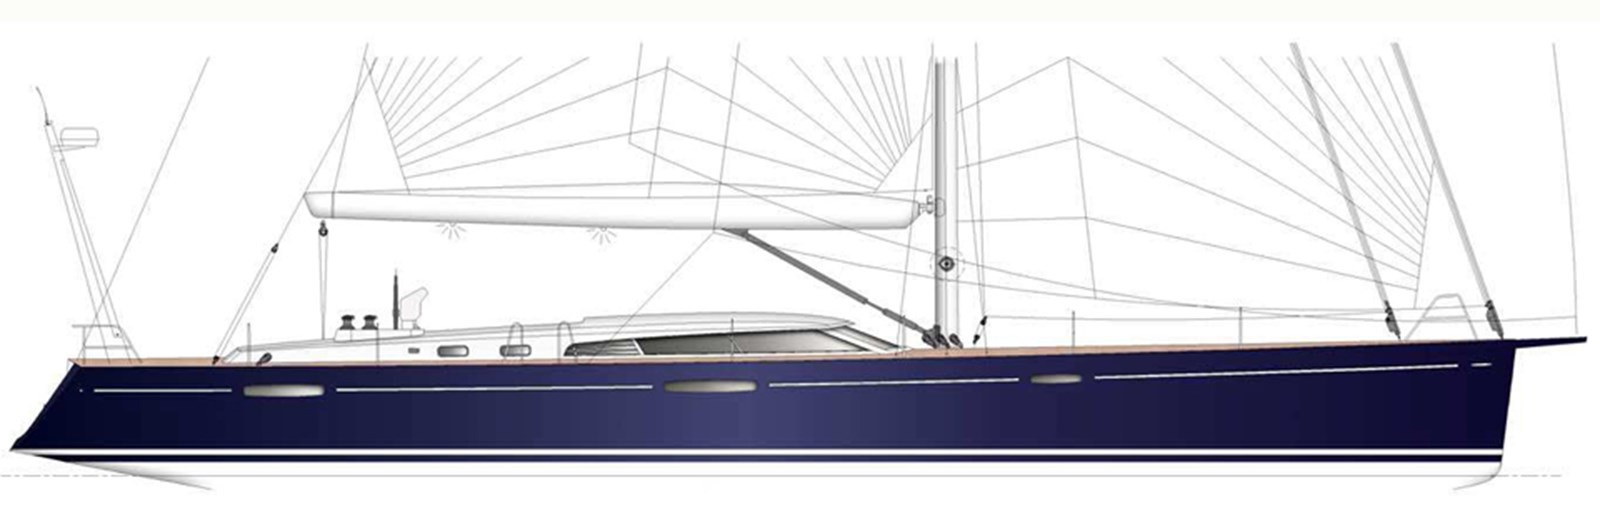 Layout 3 2009 CHANTIERS NAVALS GARCIA Garcia 75 Cruising Sailboat 2825915